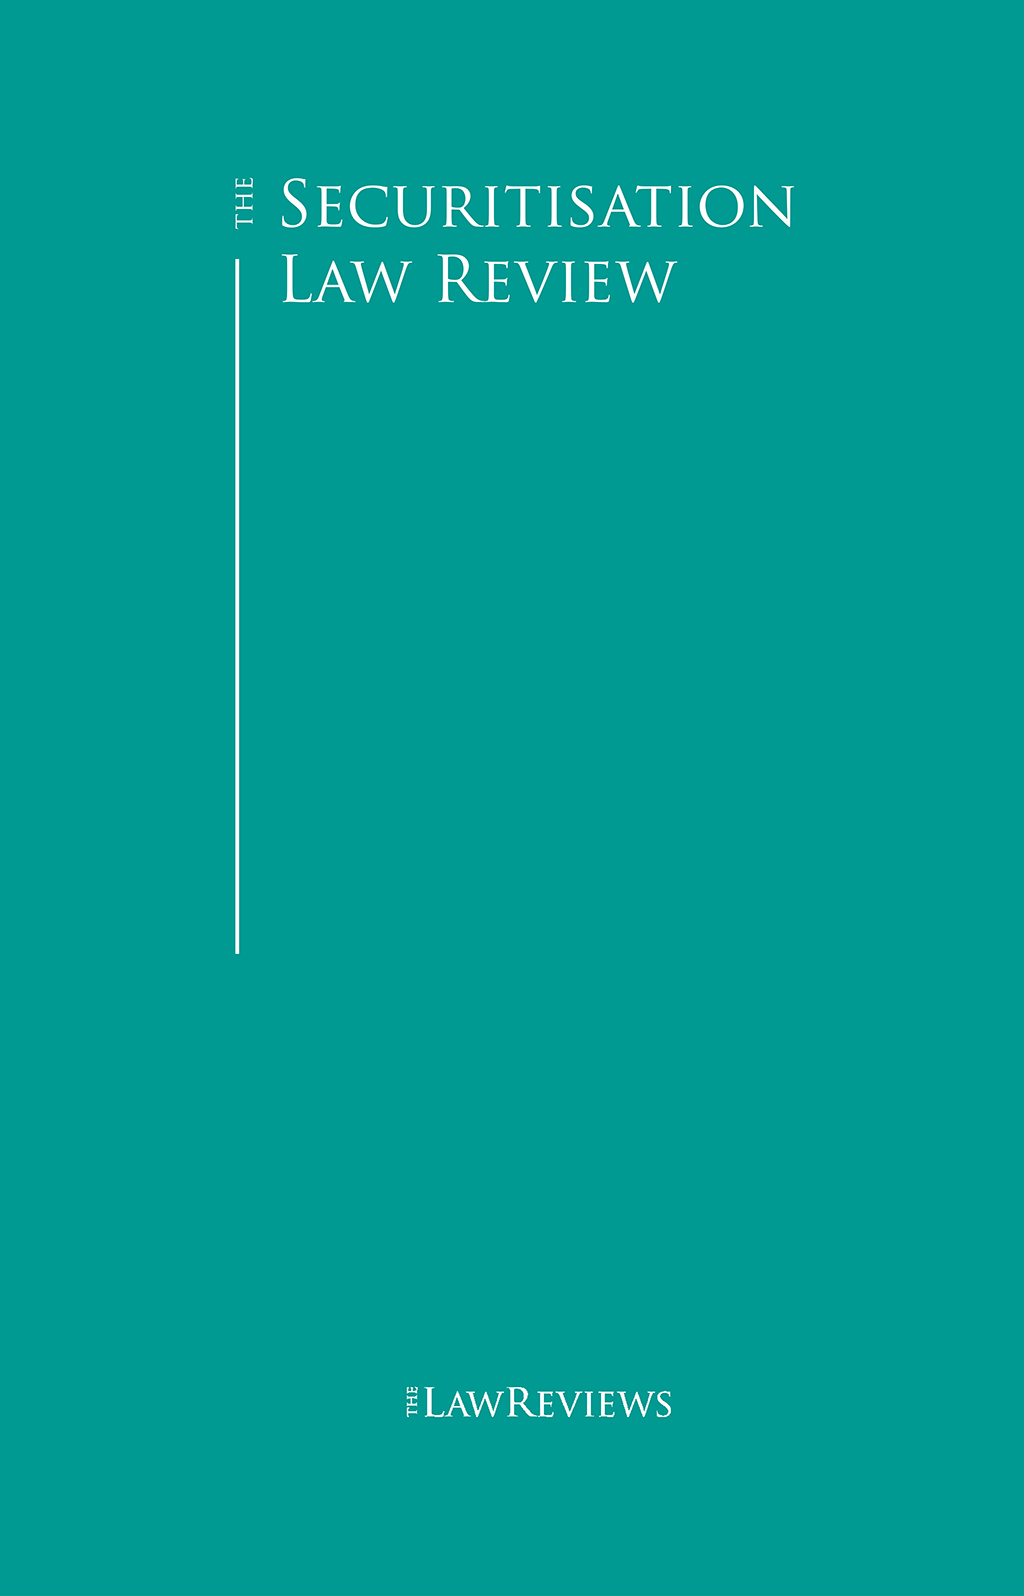 The Securitisation Law Review